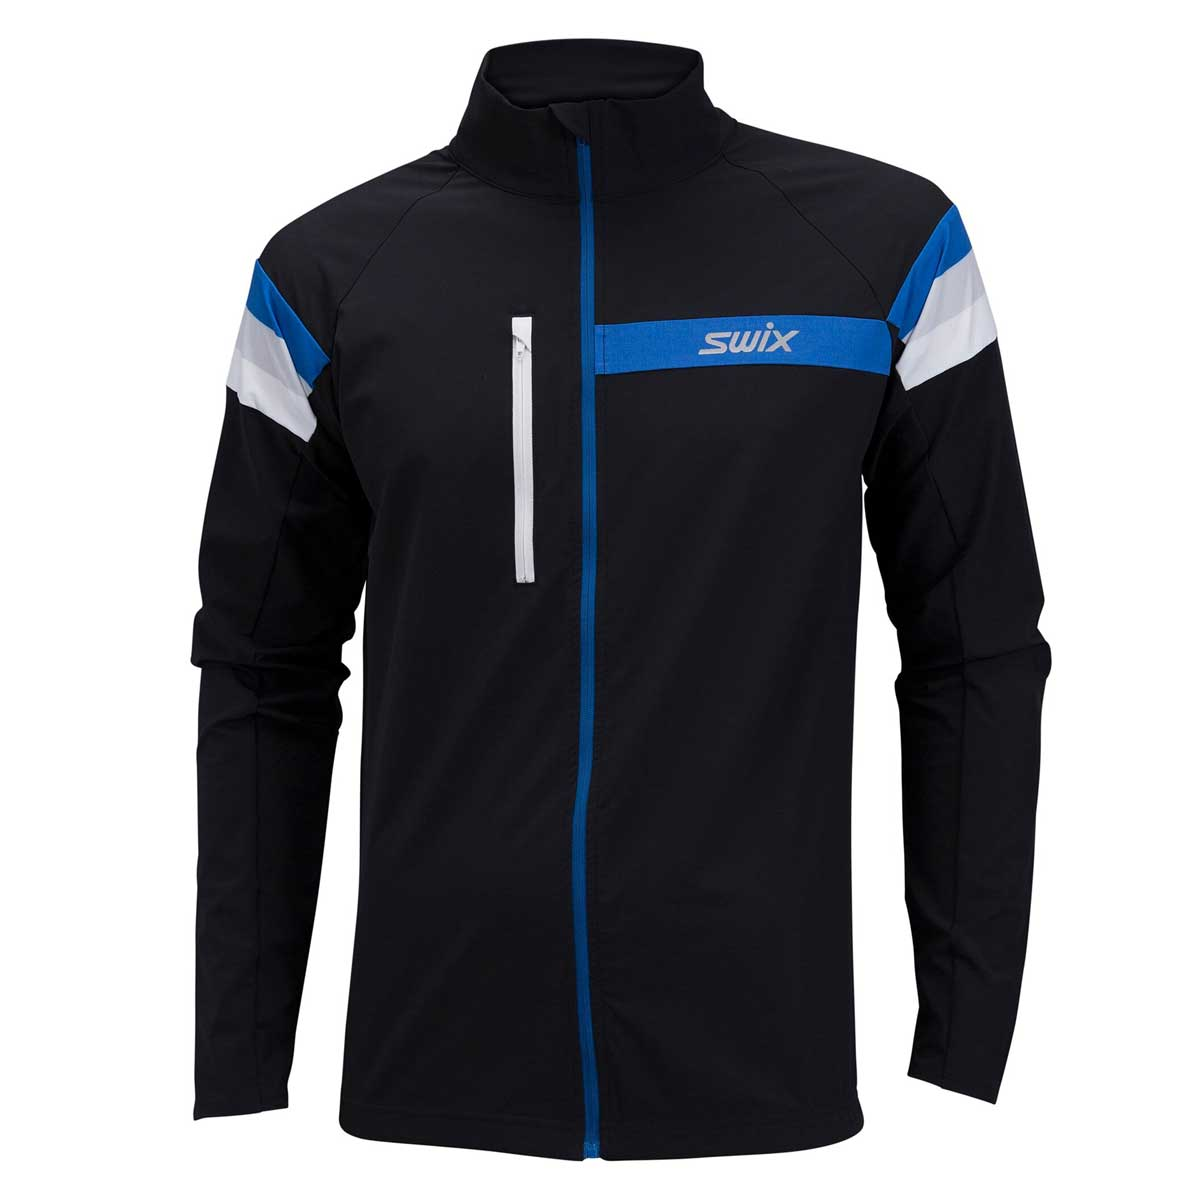 Swix Men's Focus Jacket in Black